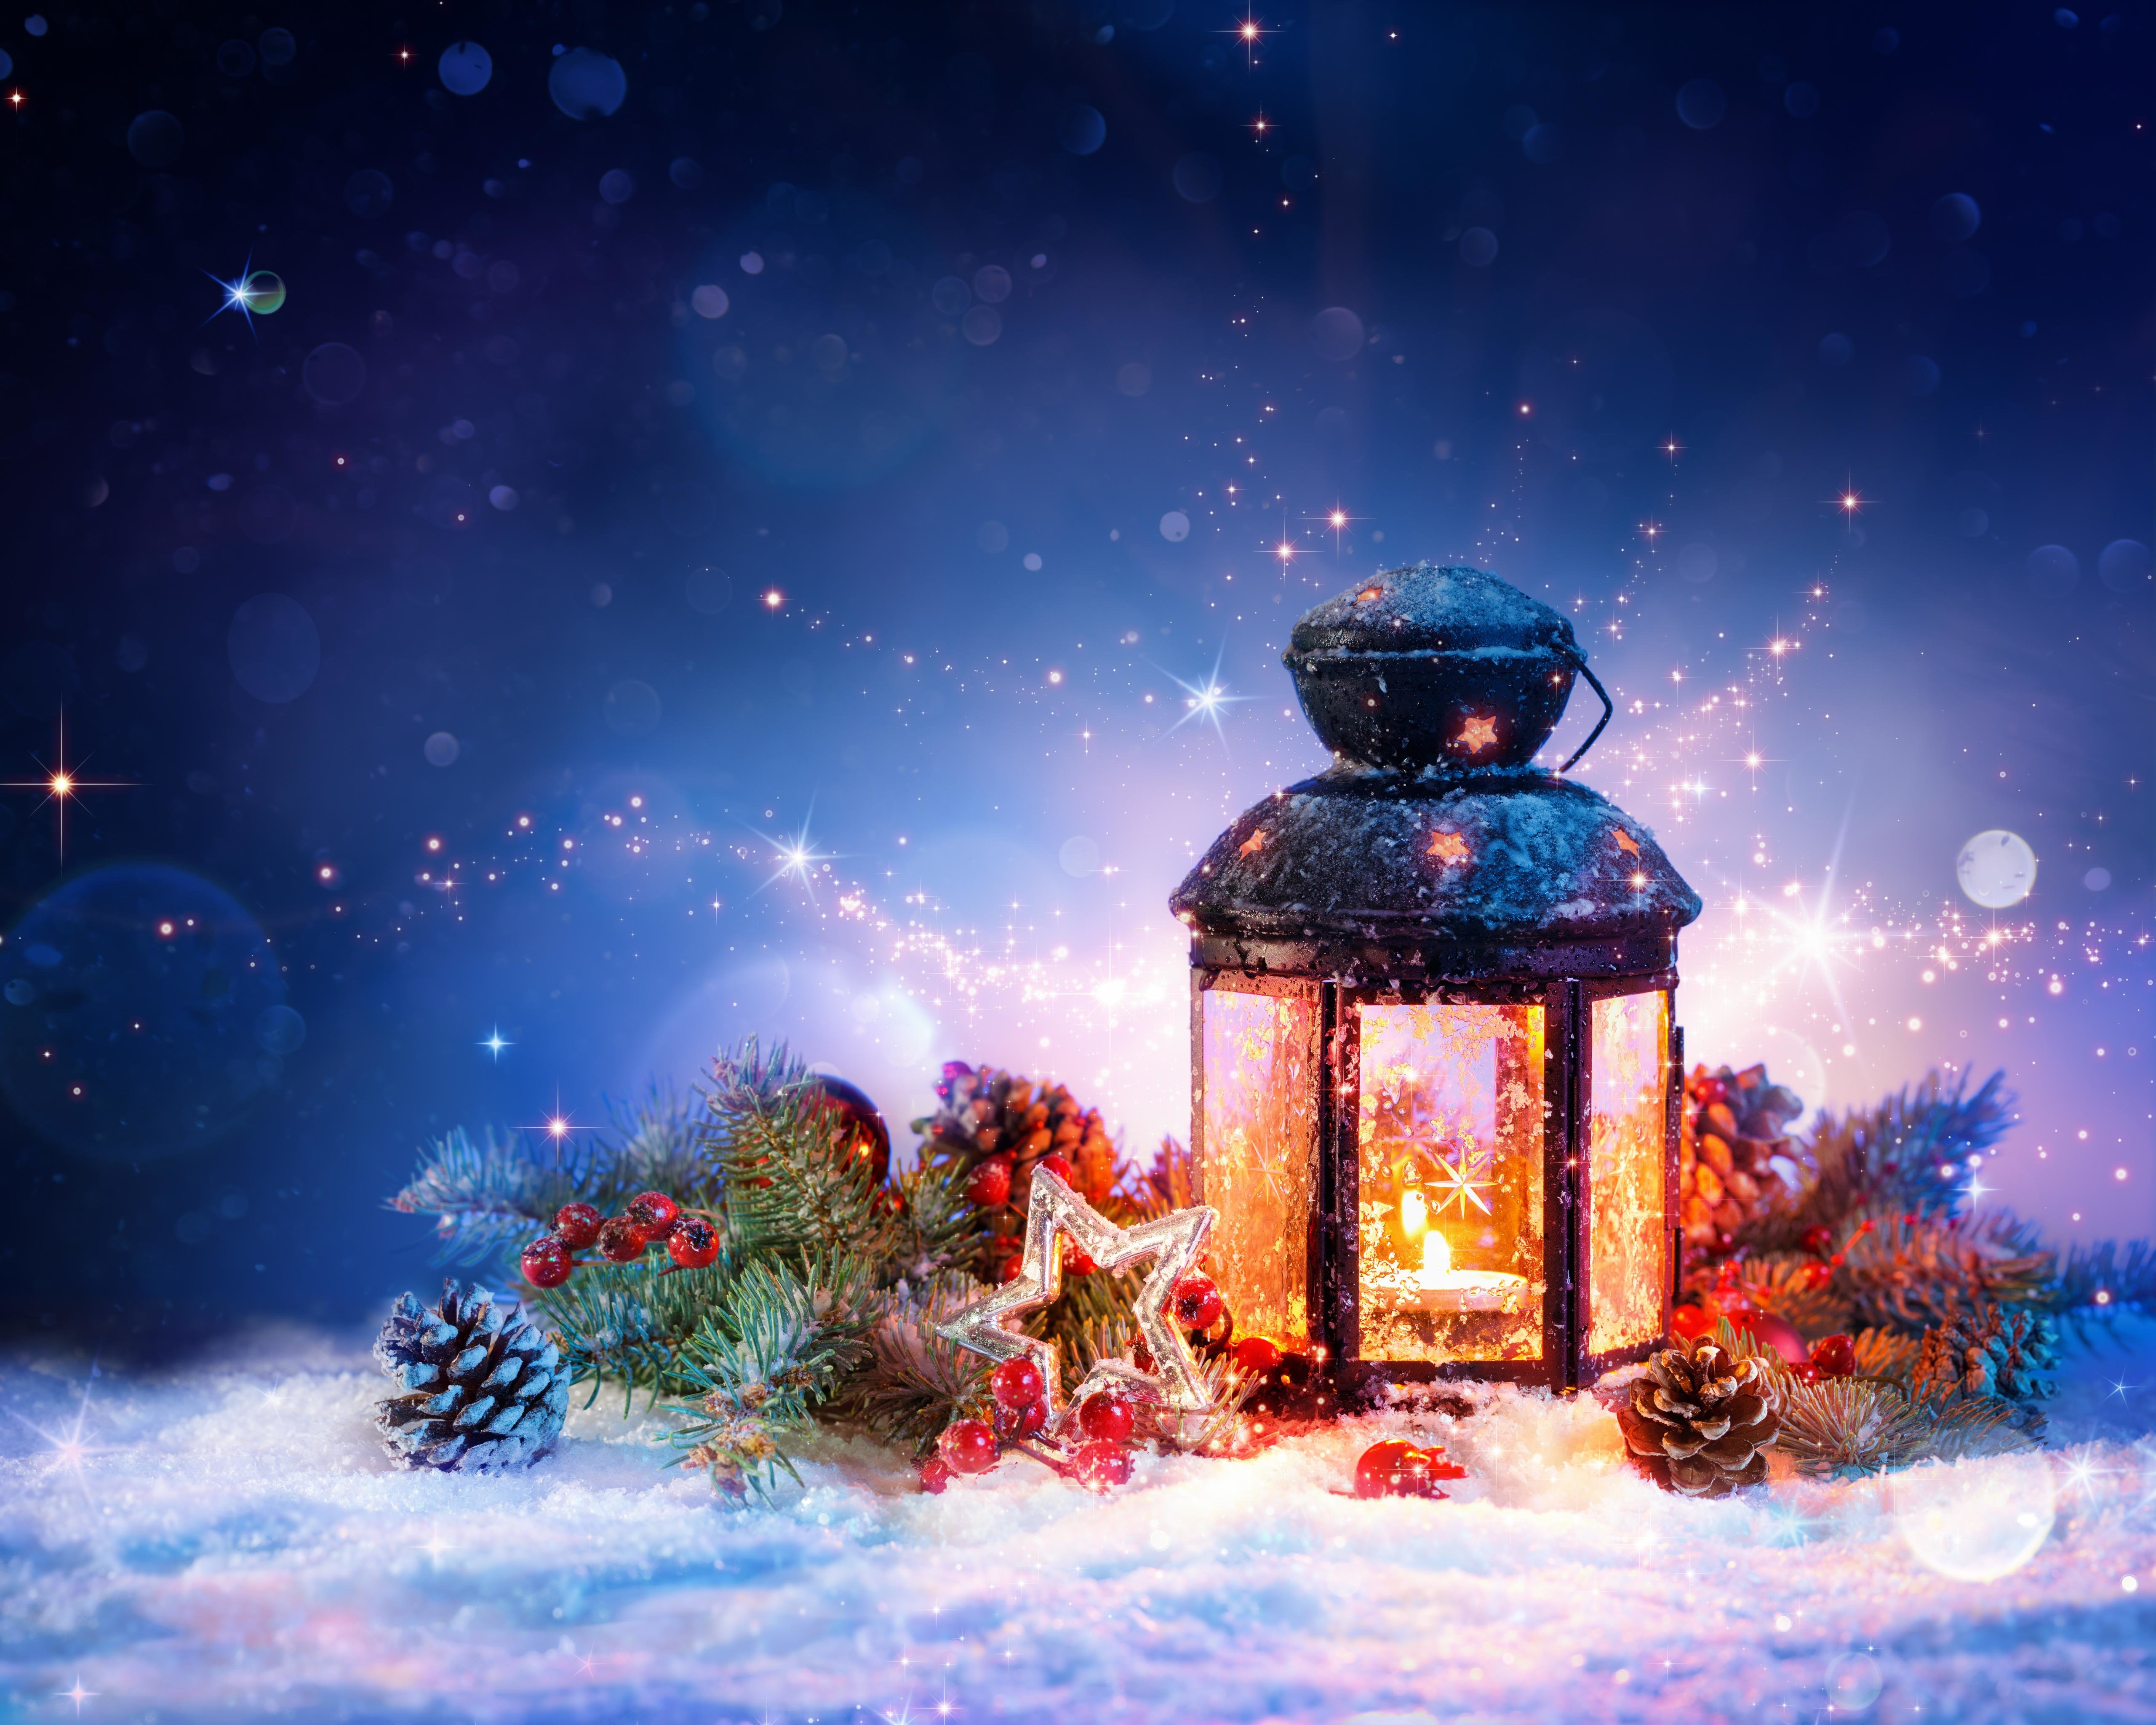 Free download Christmas background ID:434283 hd 5120x4096 for computer